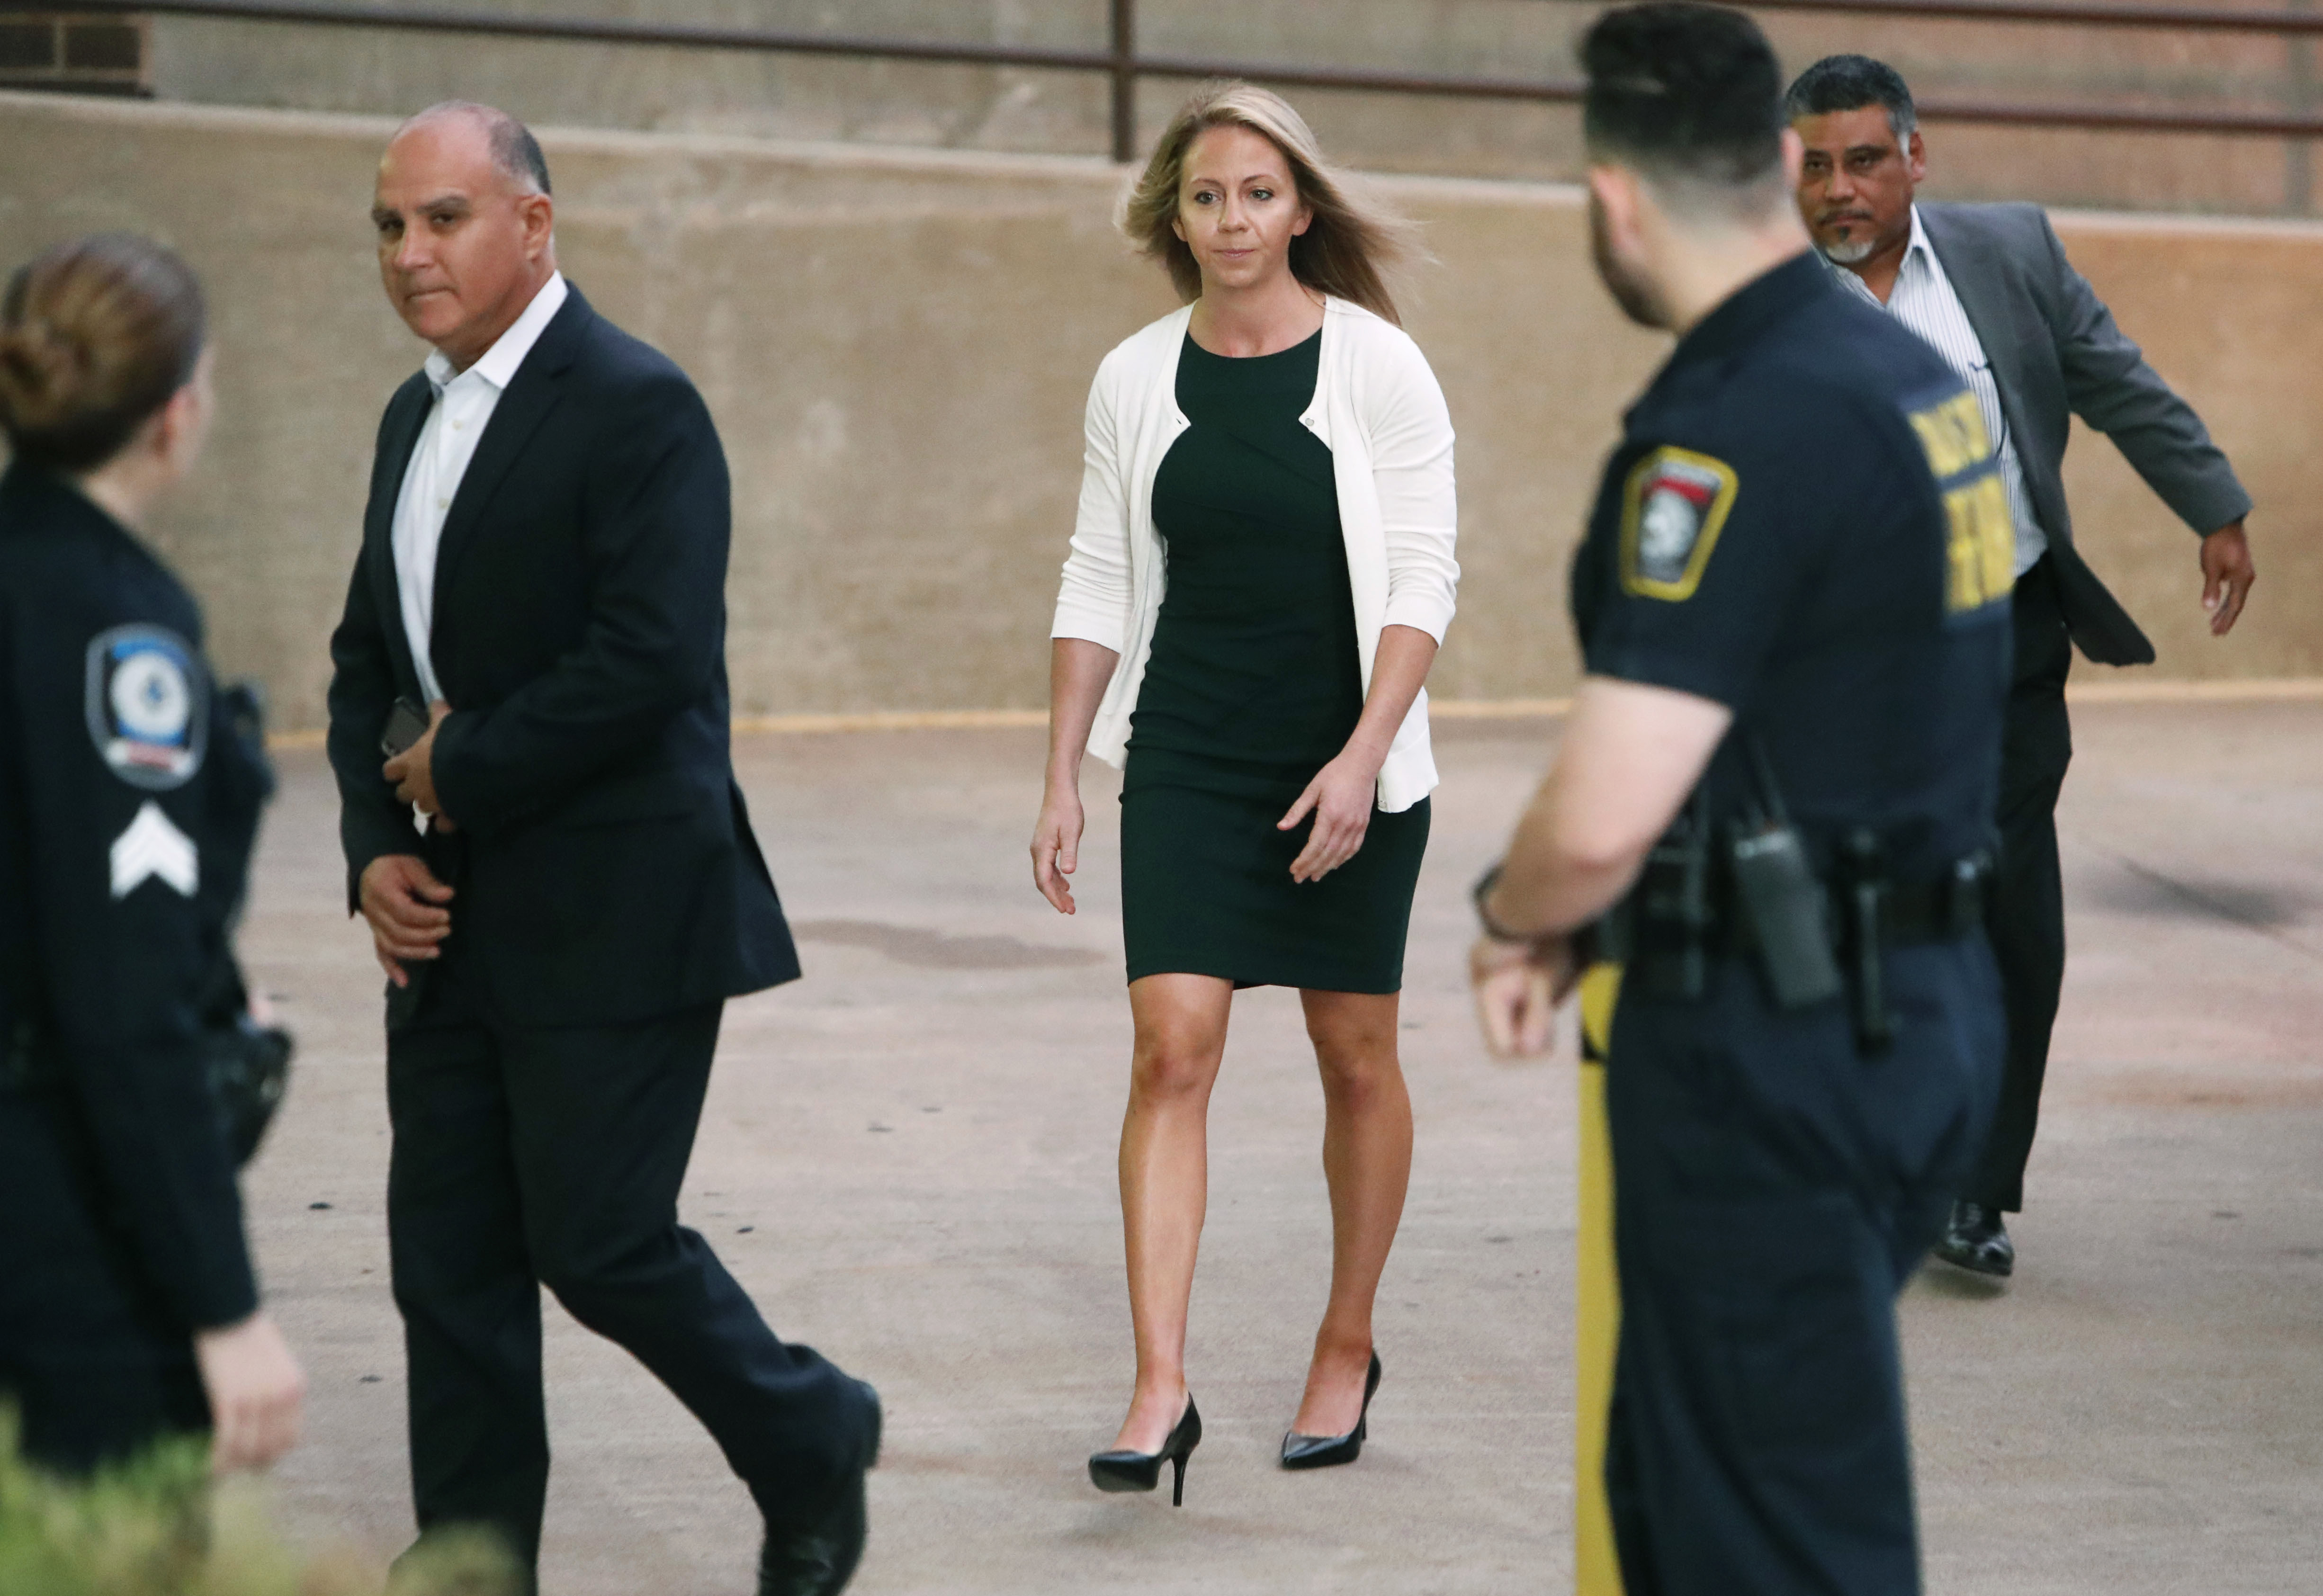 amber guyger on trial